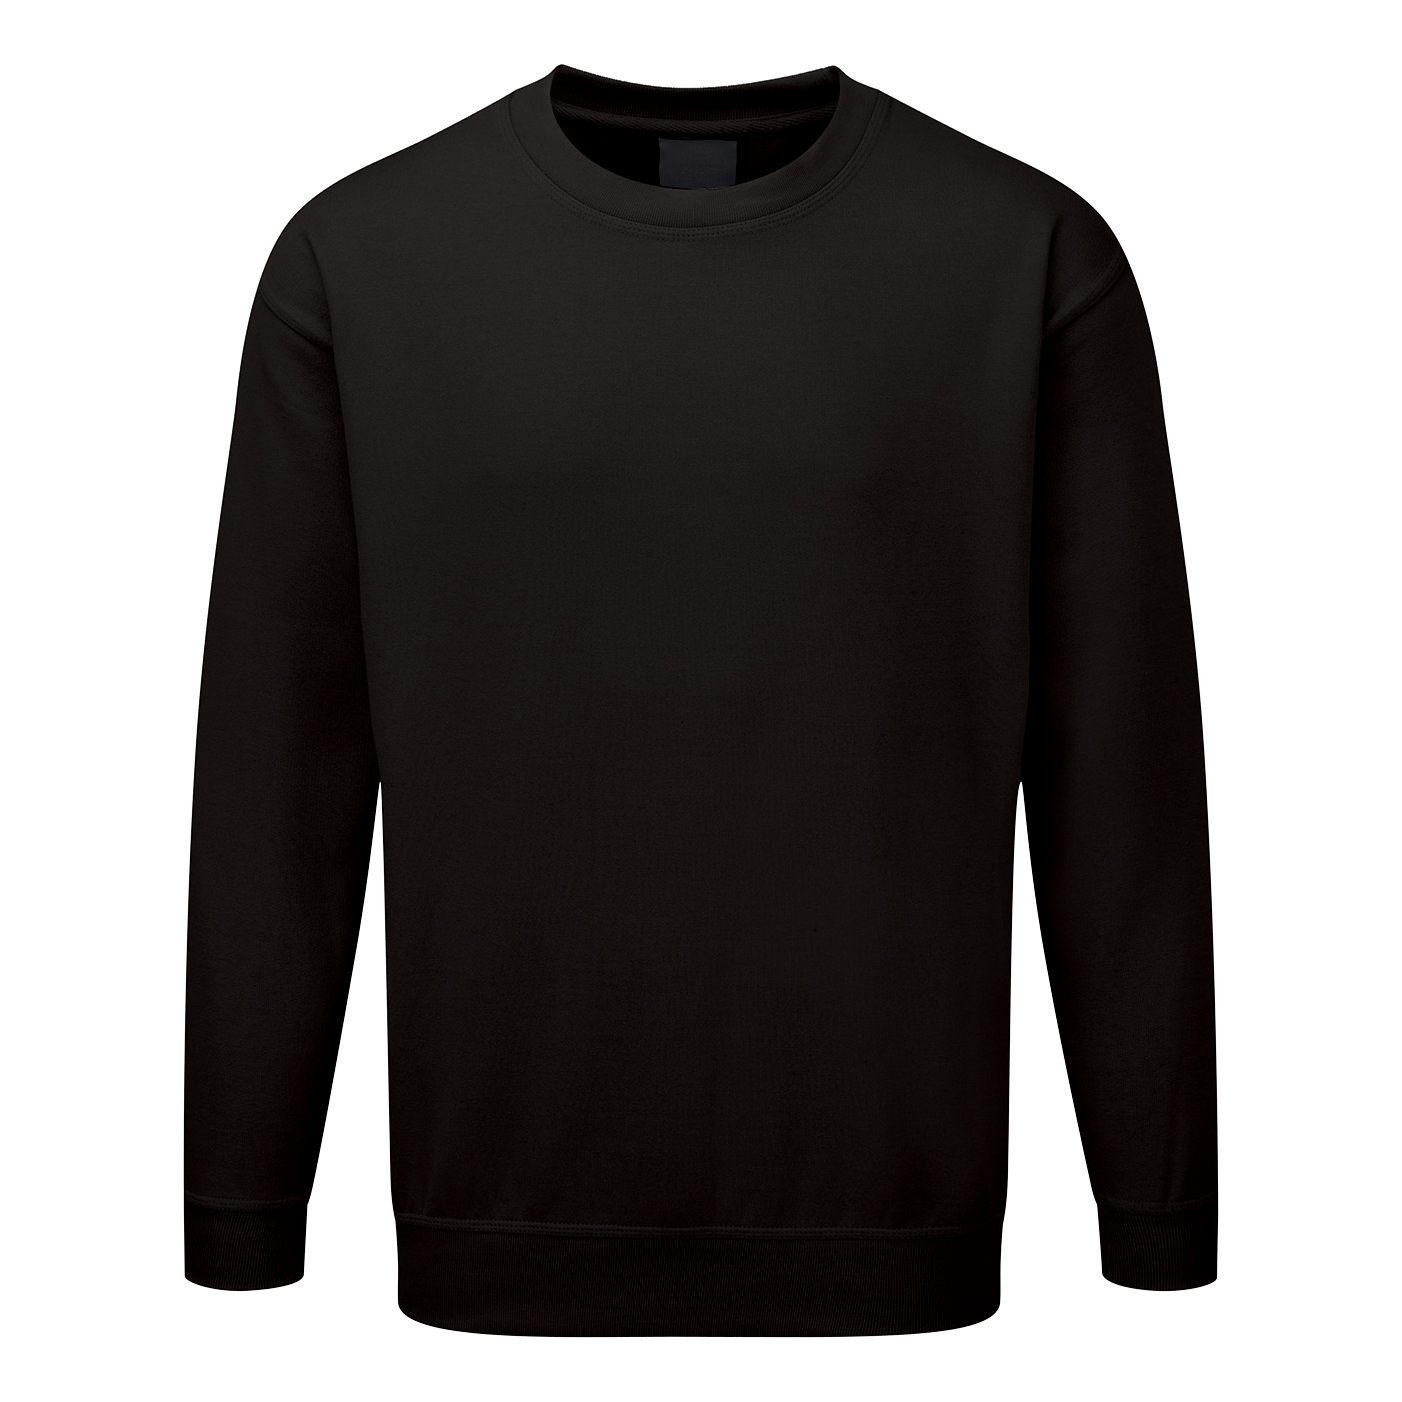 Click Workwear Sweatshirt Polycotton 300gsm XL Black Ref CLPCSBLXL *1-3 Days Lead Time*